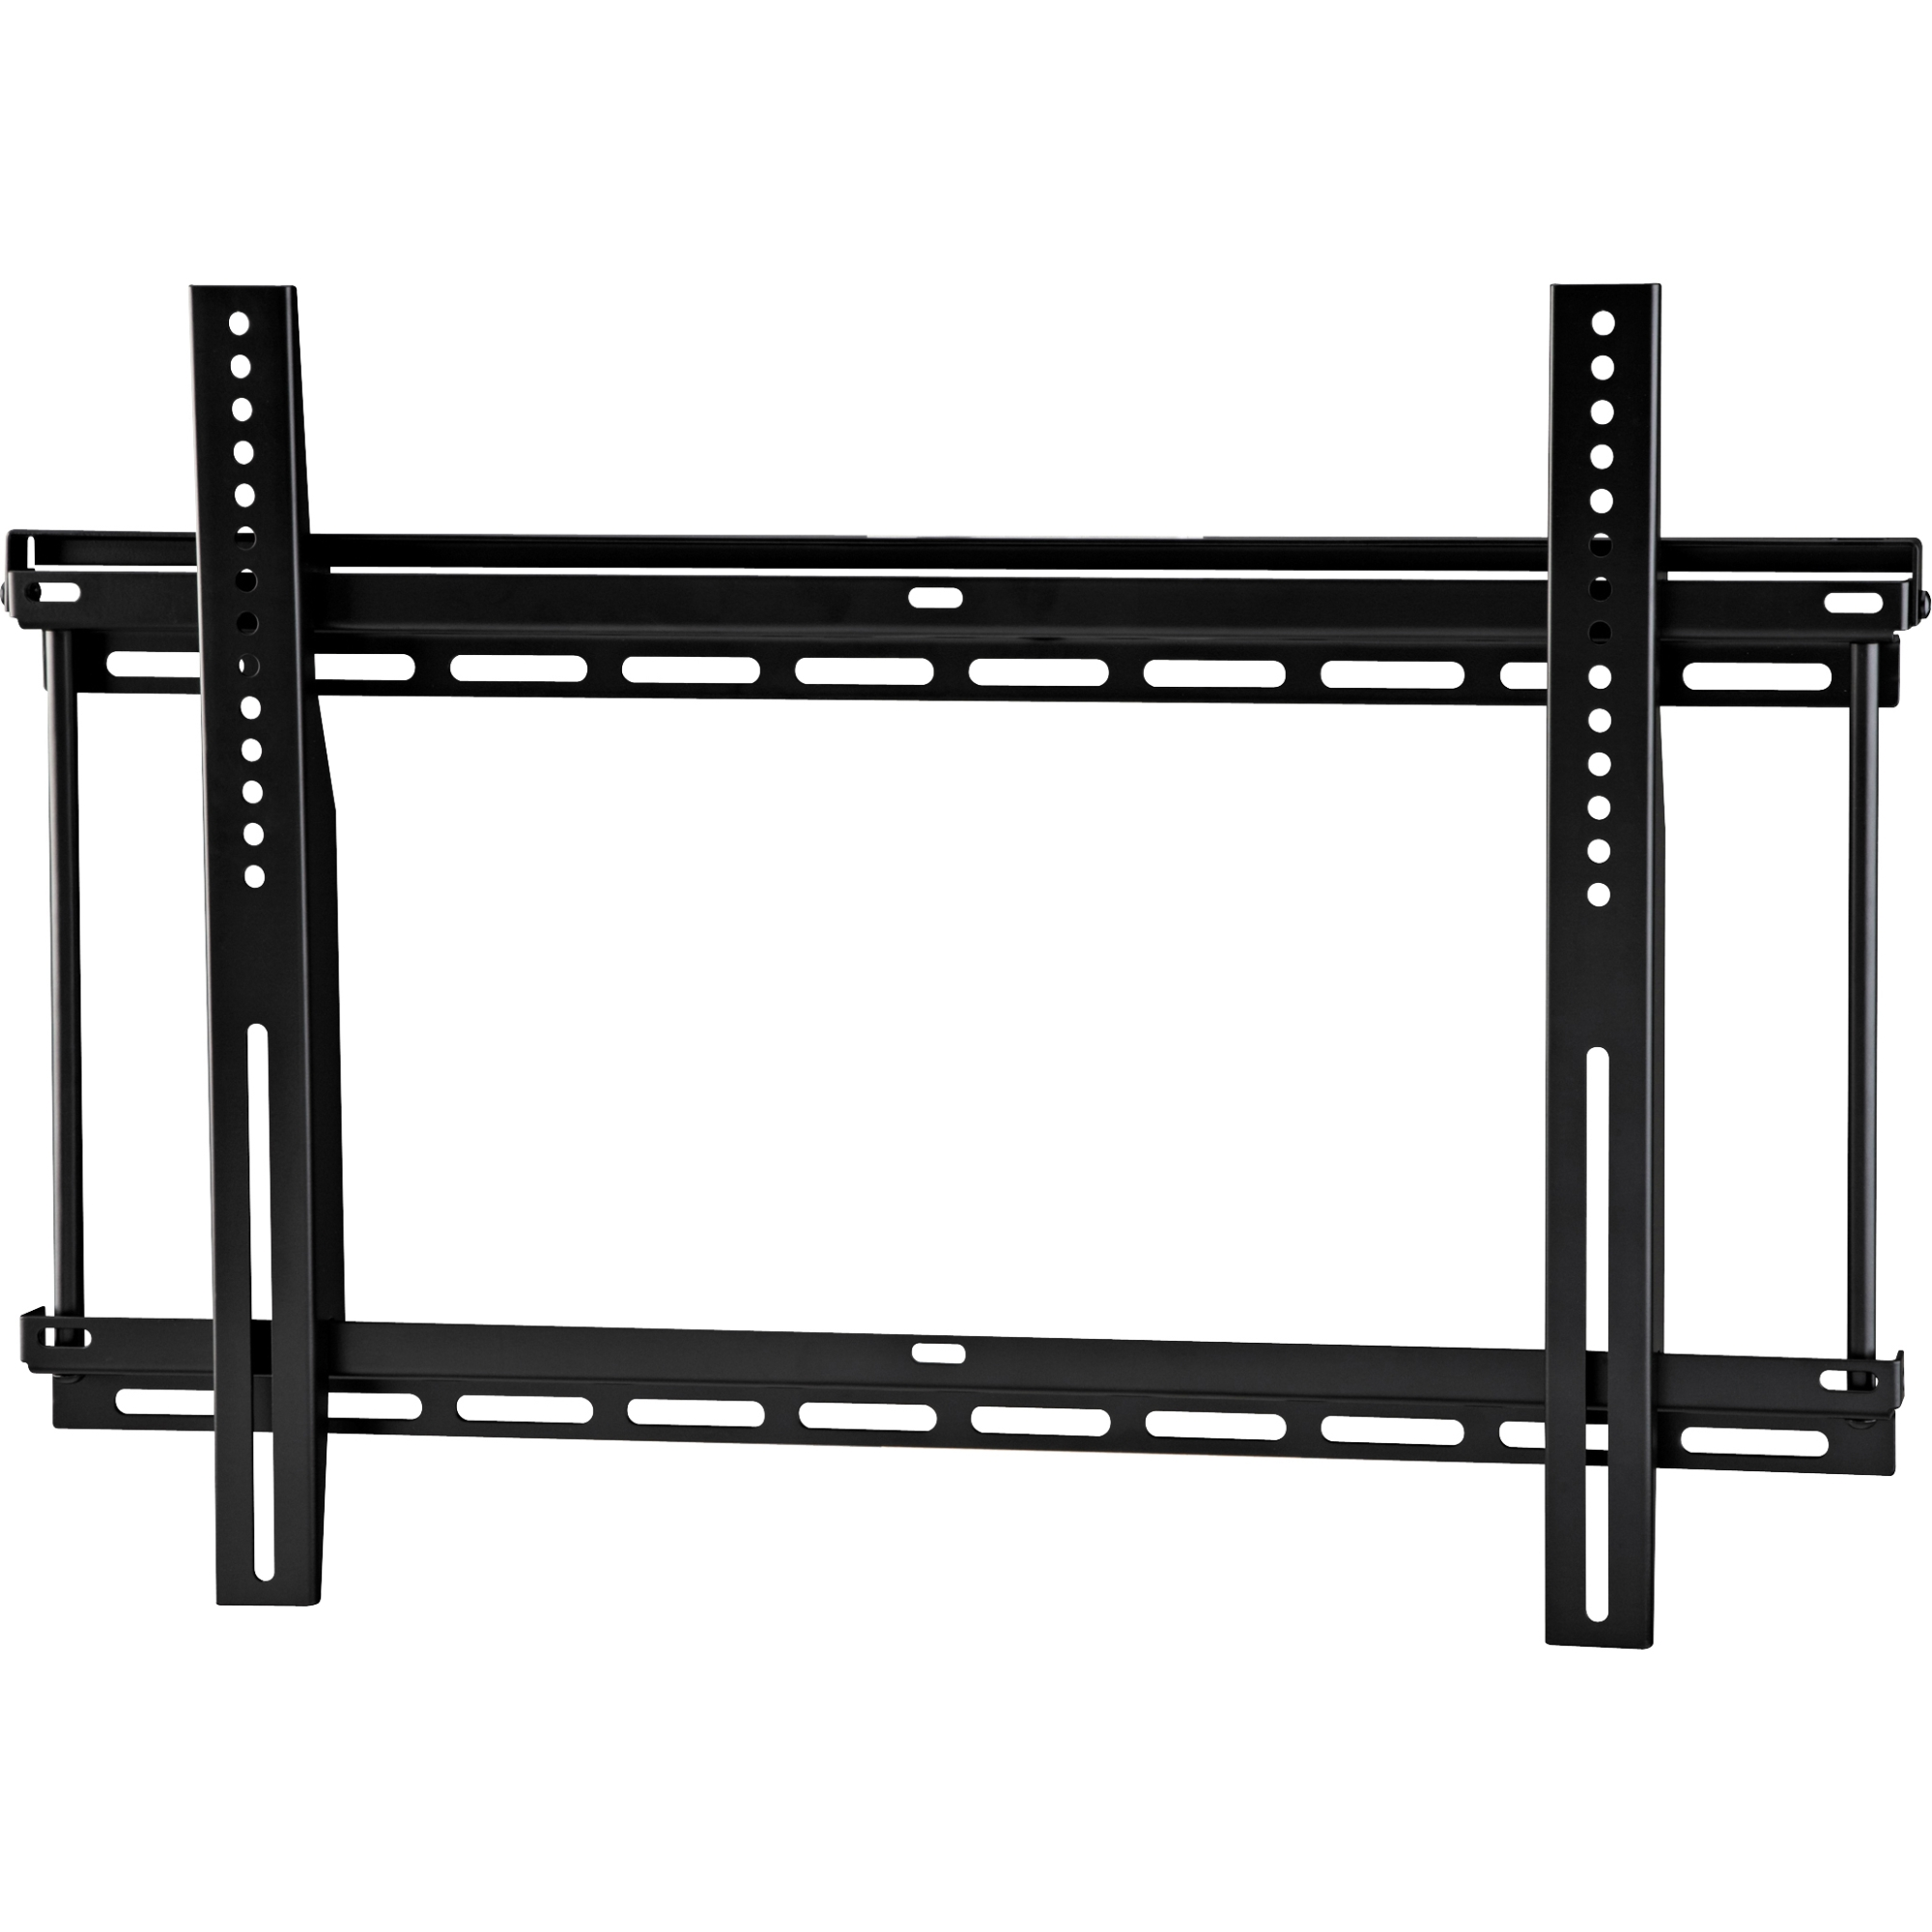 "Ergotron Neo-Flex 60-614 Wall Mount for Flat Panel Display - 37"" (Refurbished)"